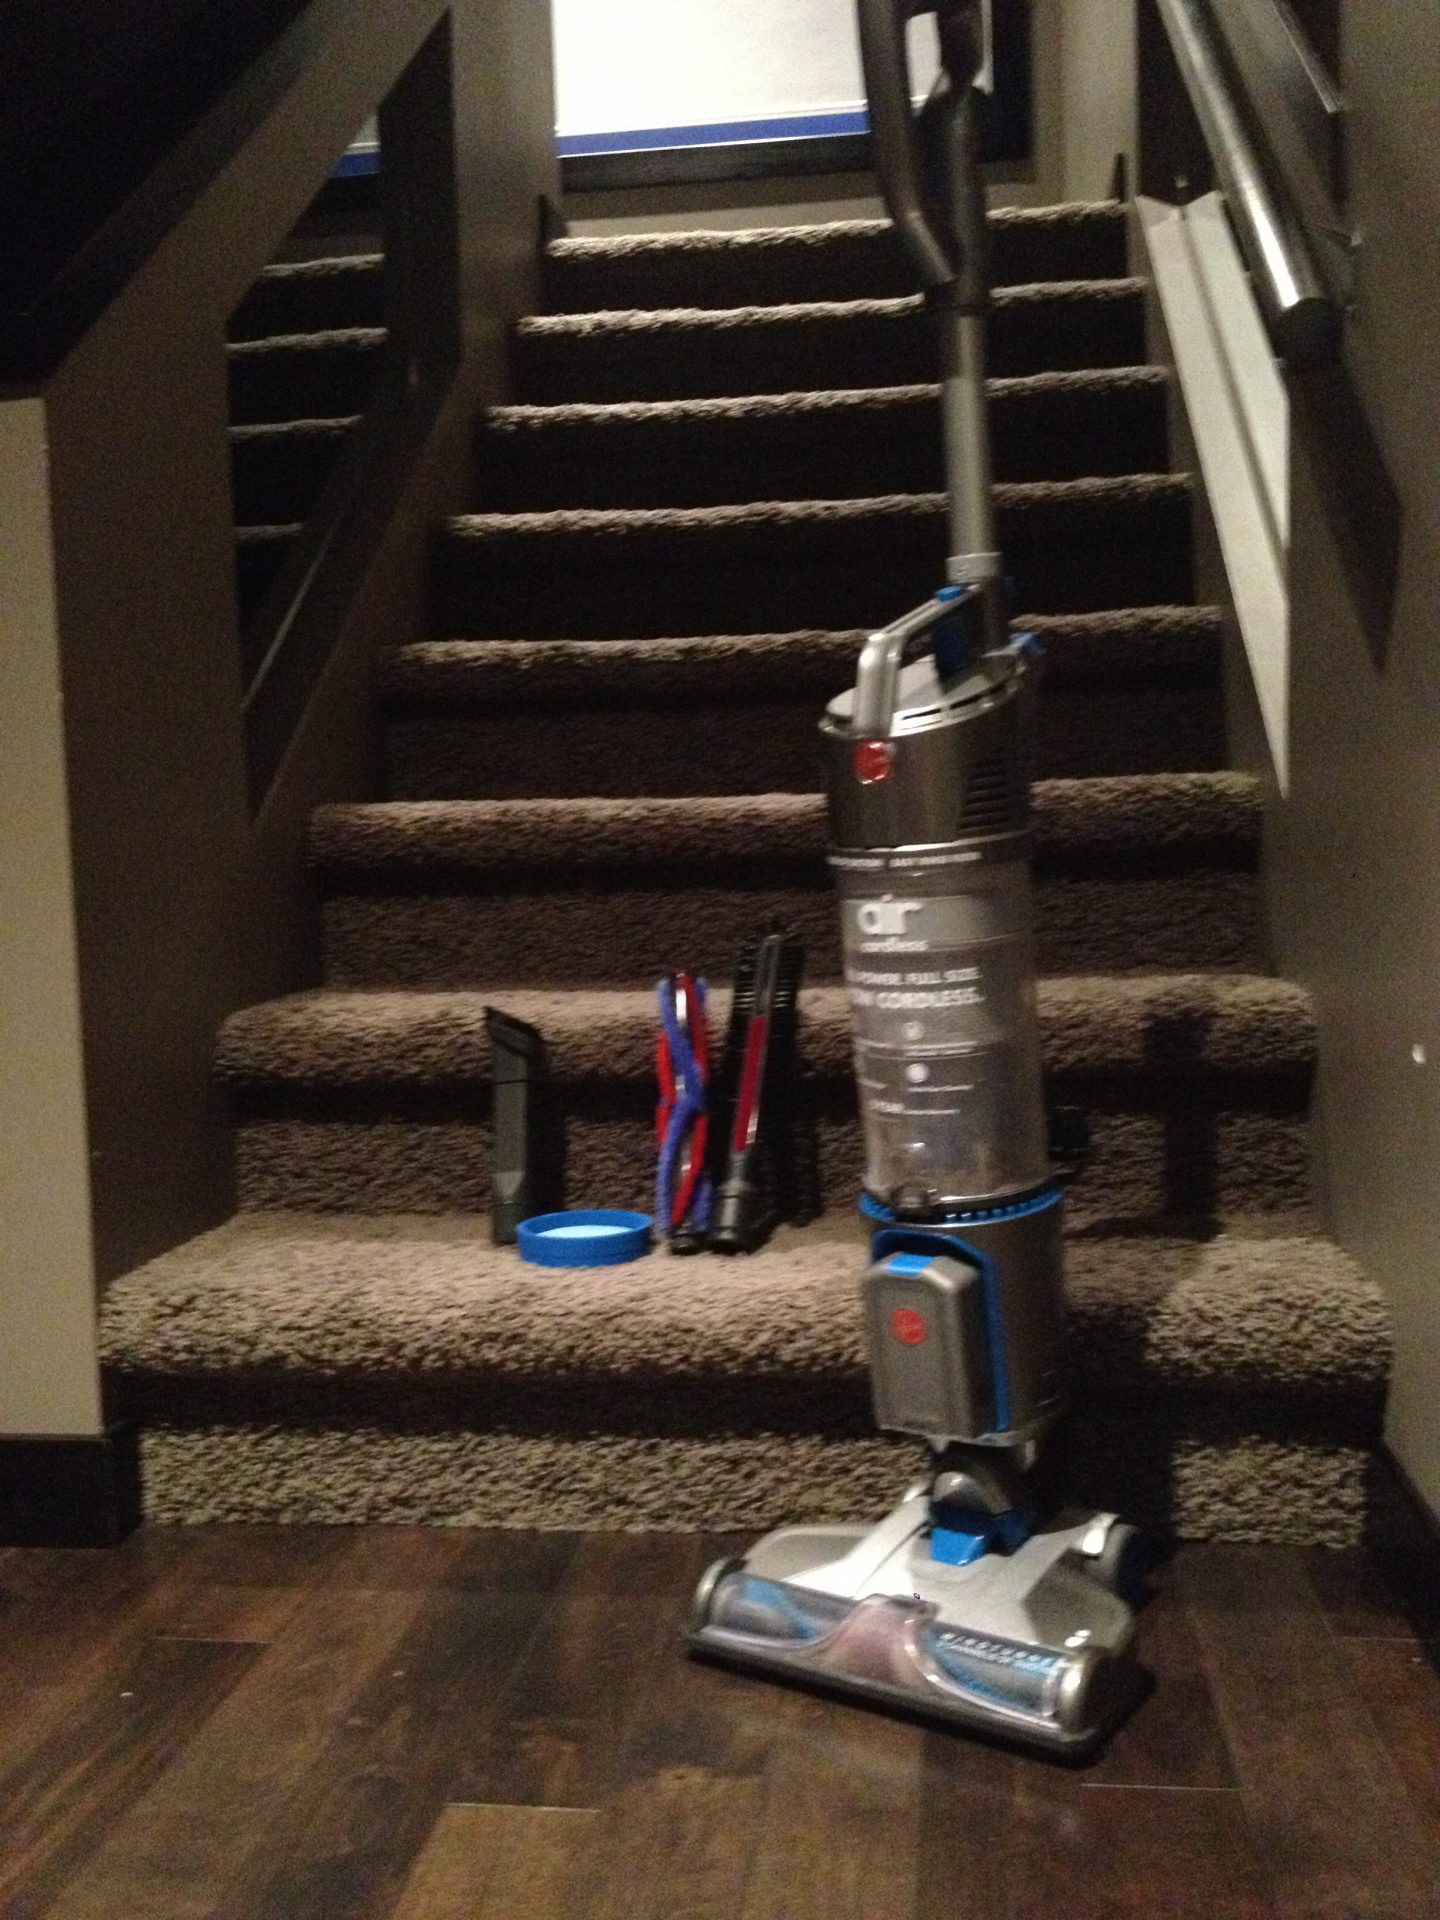 #RethinkCleaning With a New Hoover Cordless Vacuum #Giveaway